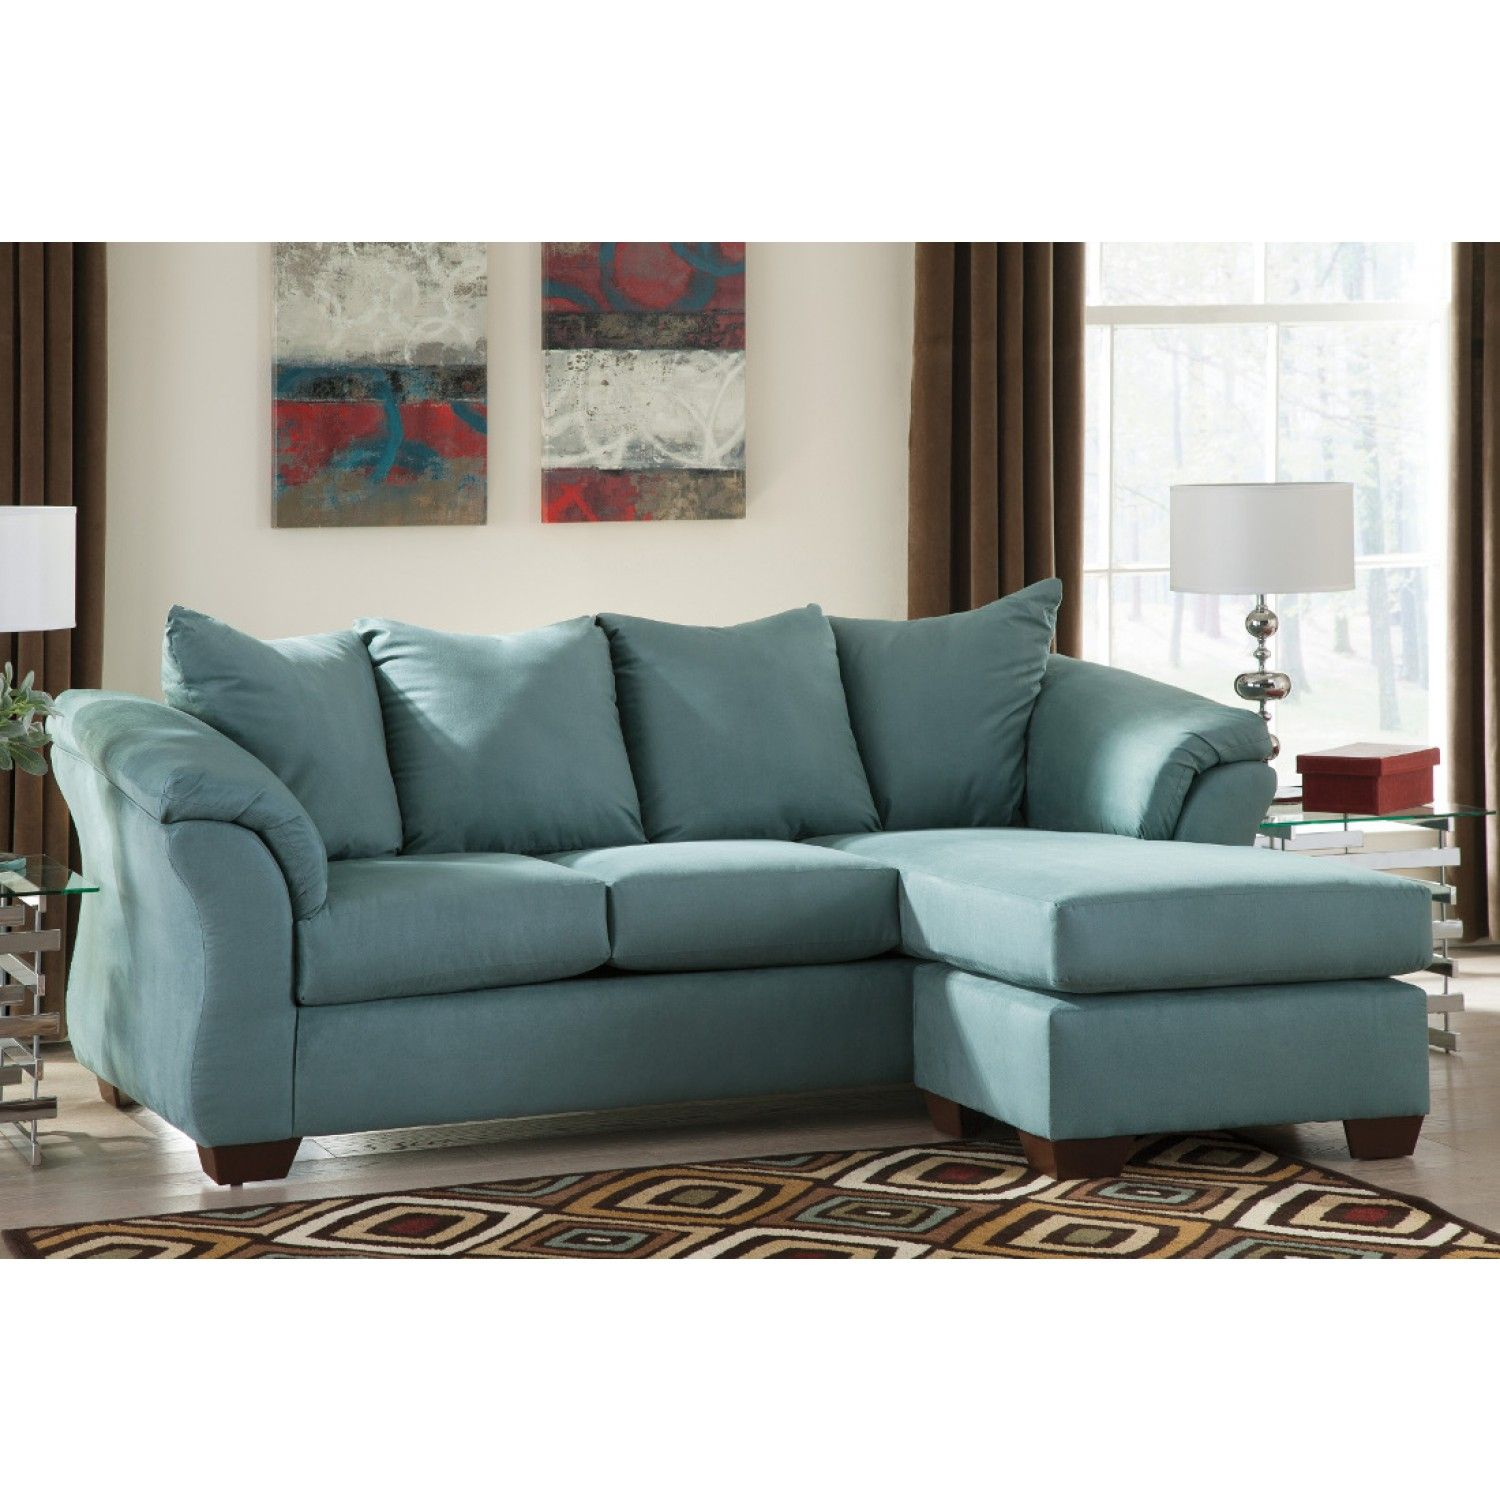 Ashley Furniture Darcy Sofa Chaise In Sky Ashley Furniture Sofas